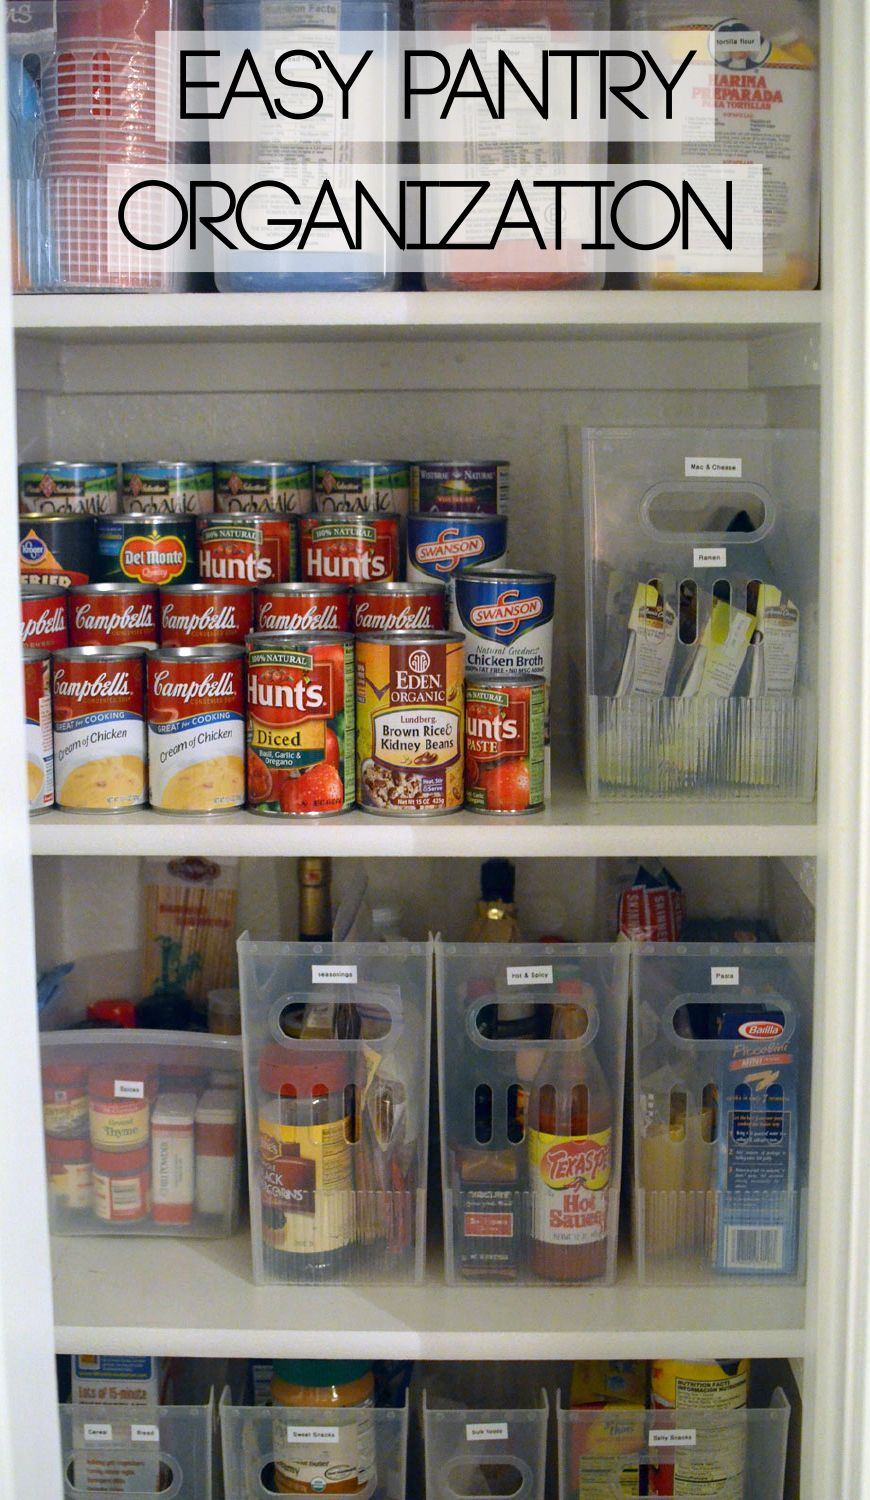 Pantry Organization Uses Under Shelf Baskets And Multi Purpose Bins From The Container Store